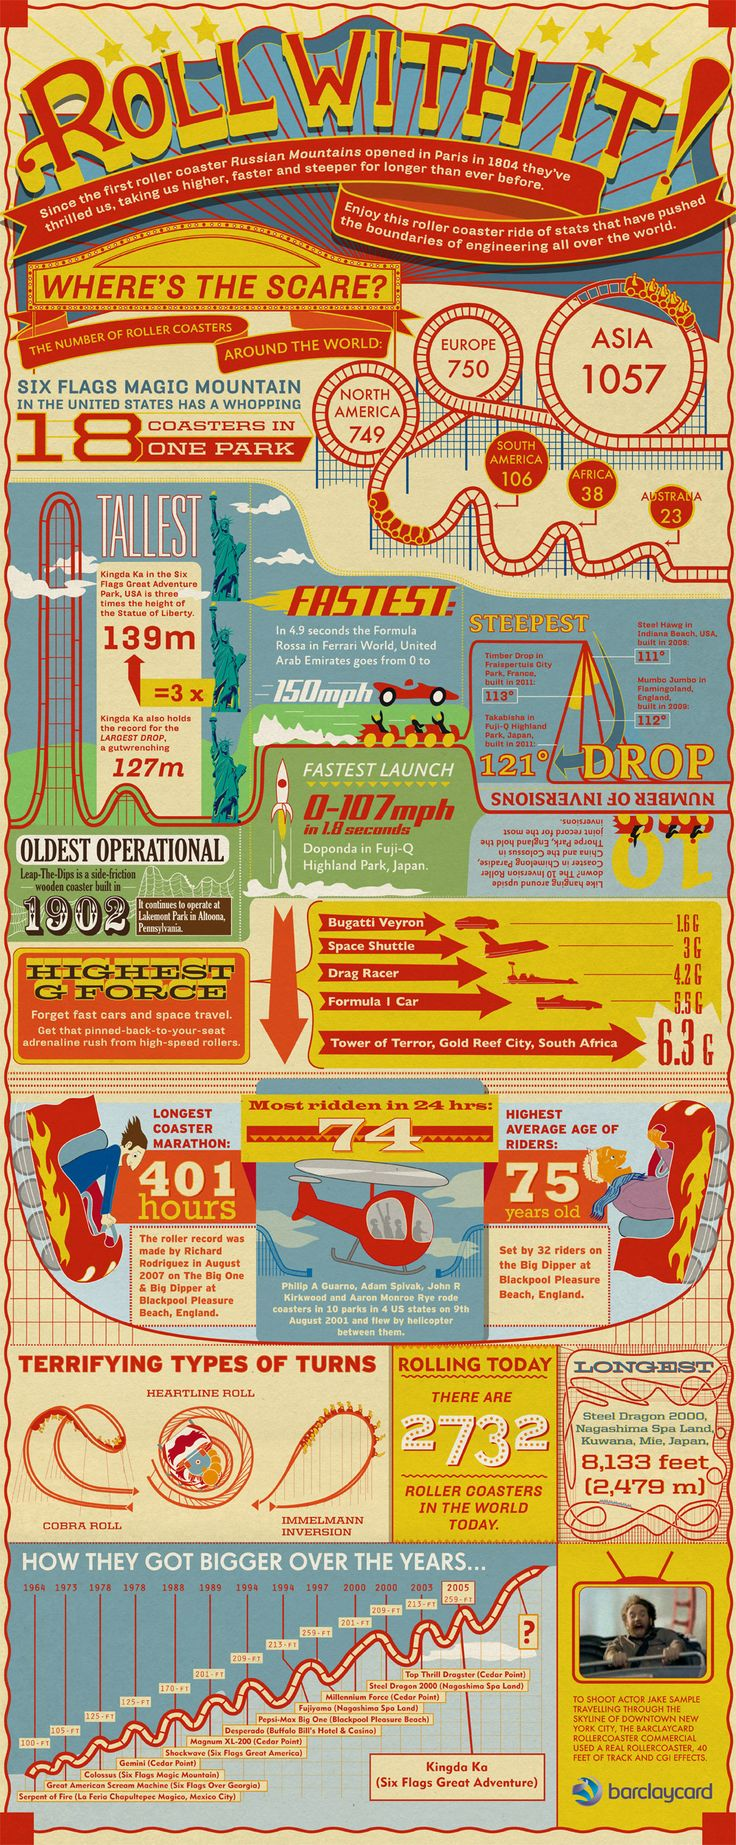 Enjoy this roller coaster ride of stats that have pushed the boundaries of engineering all over the world.